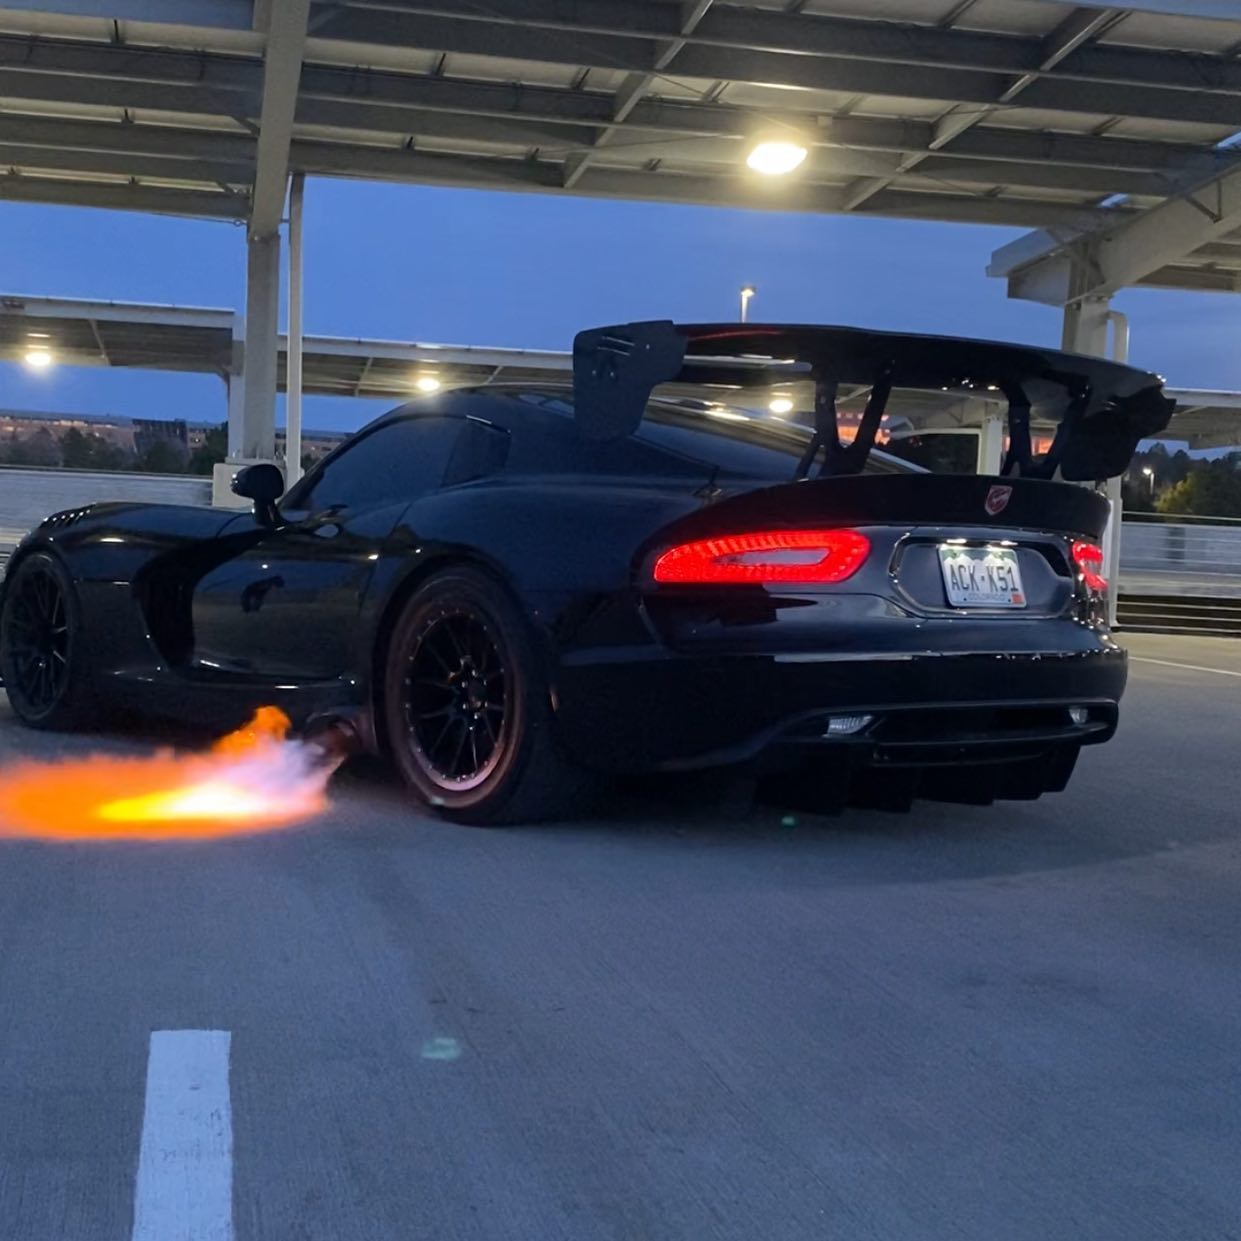 Beastly Twin-Turbo 2,630-HP Dodge Viper Shows How It Exerts Street  Supremacy - autoevolution